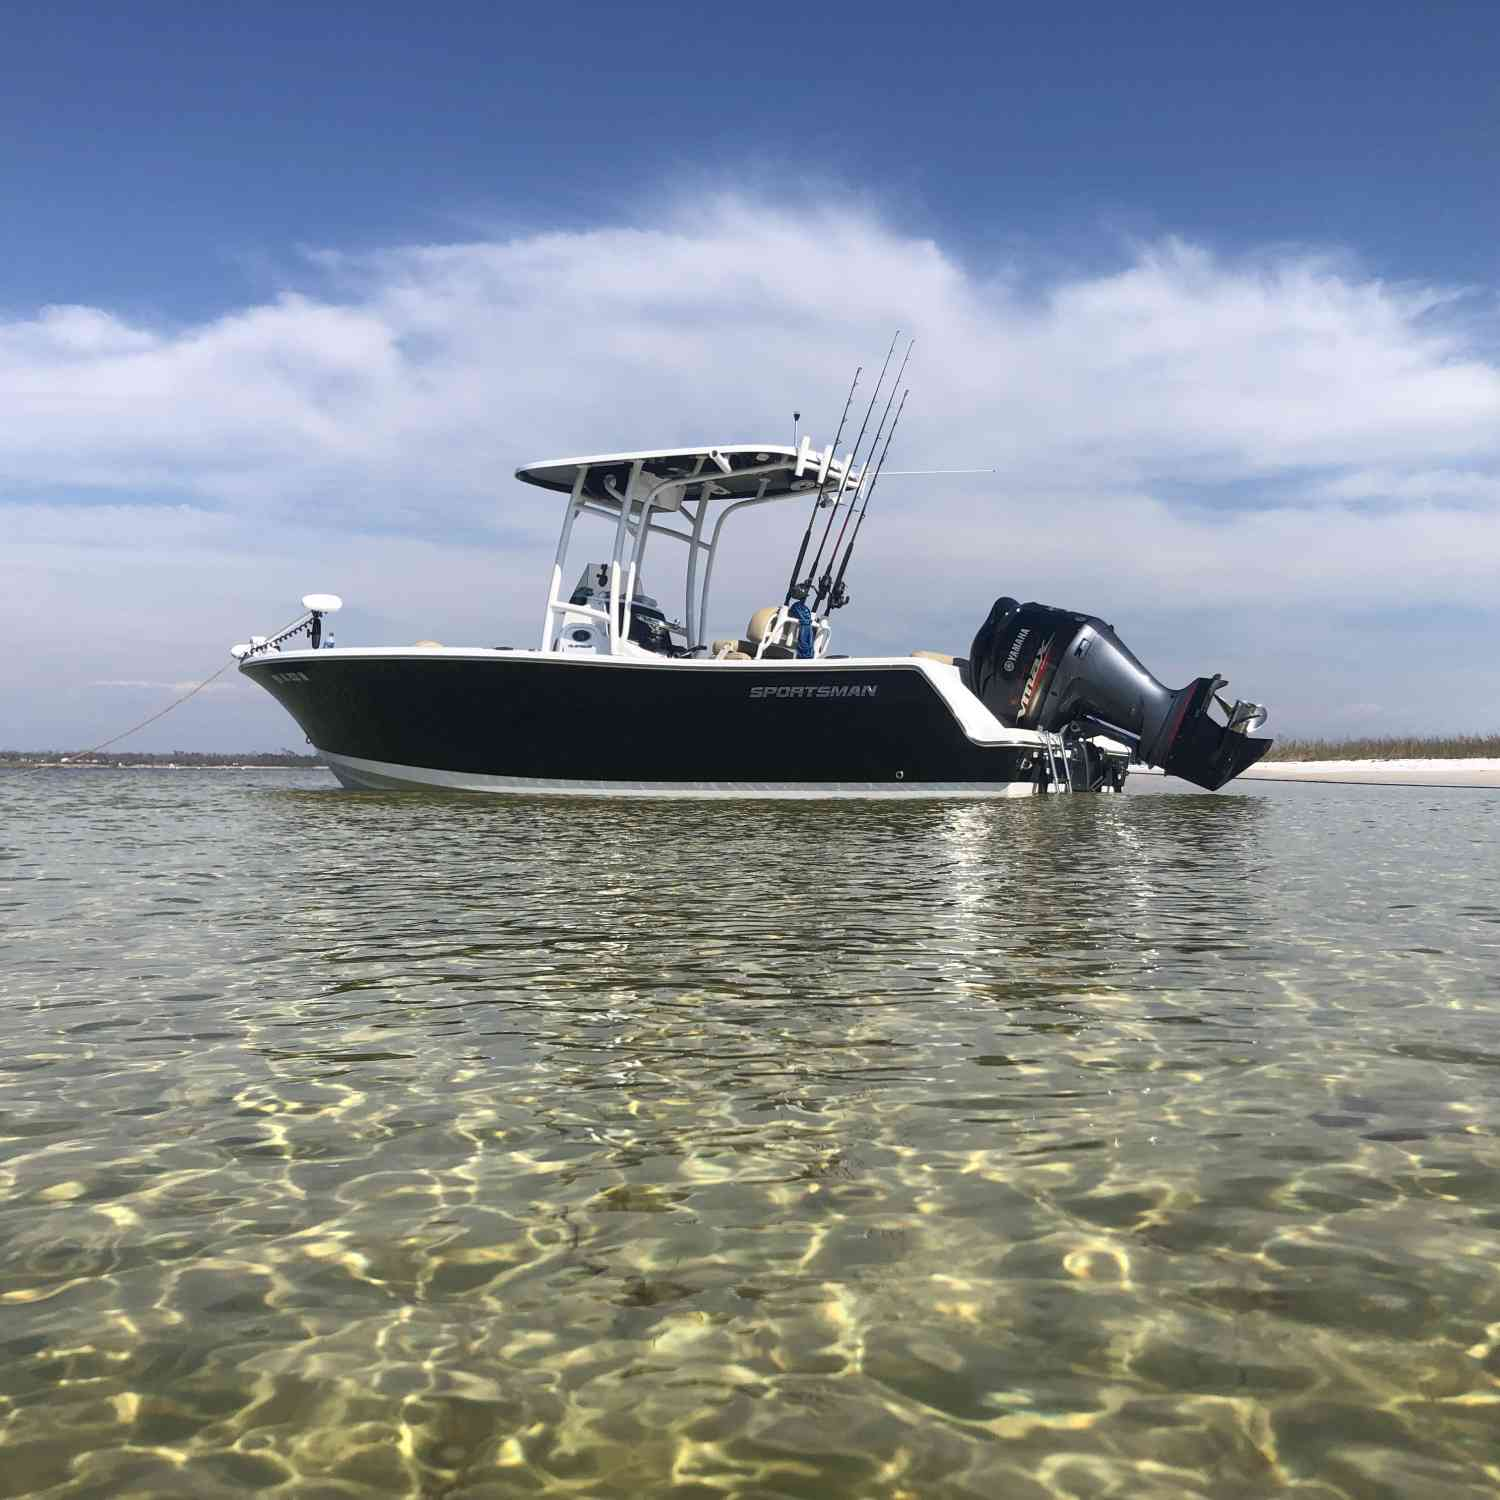 Title: Back to paradise - On board their Sportsman Open 232 Center Console - Location: Shell Island Panama City, FL. Participating in the Photo Contest #SportsmanApril2019